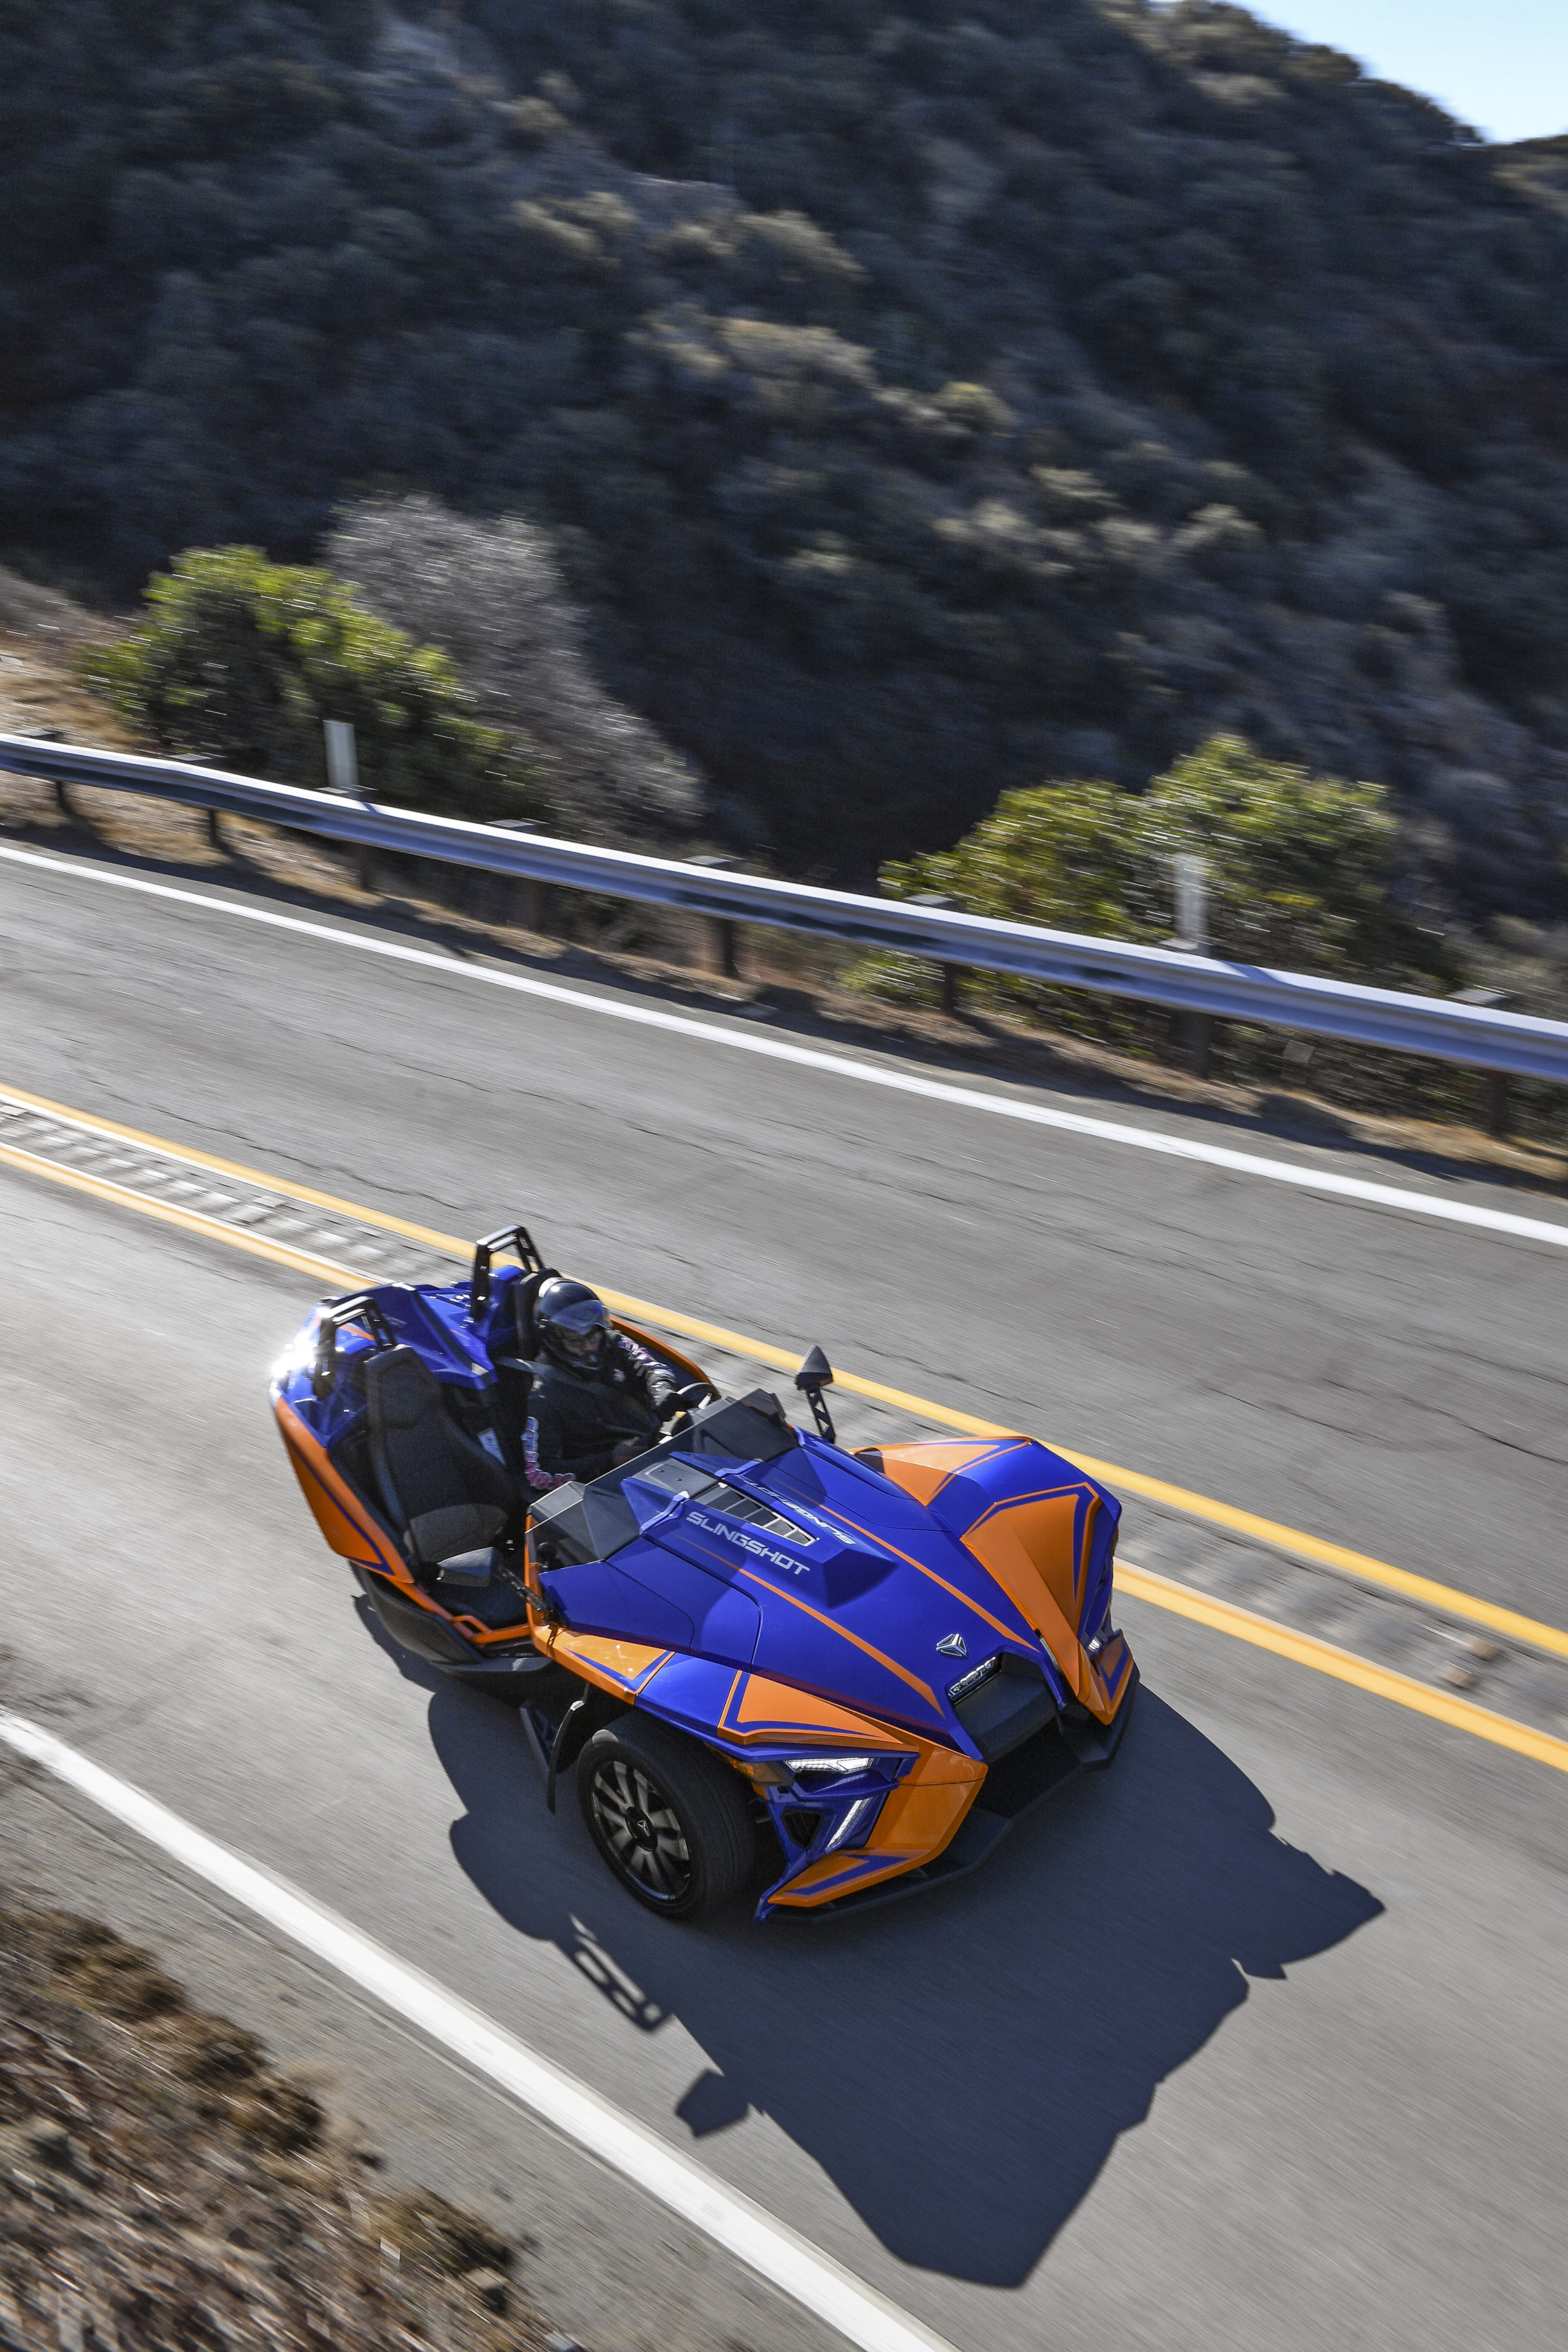 Polaris Slingshot 2021 Malibu Ride